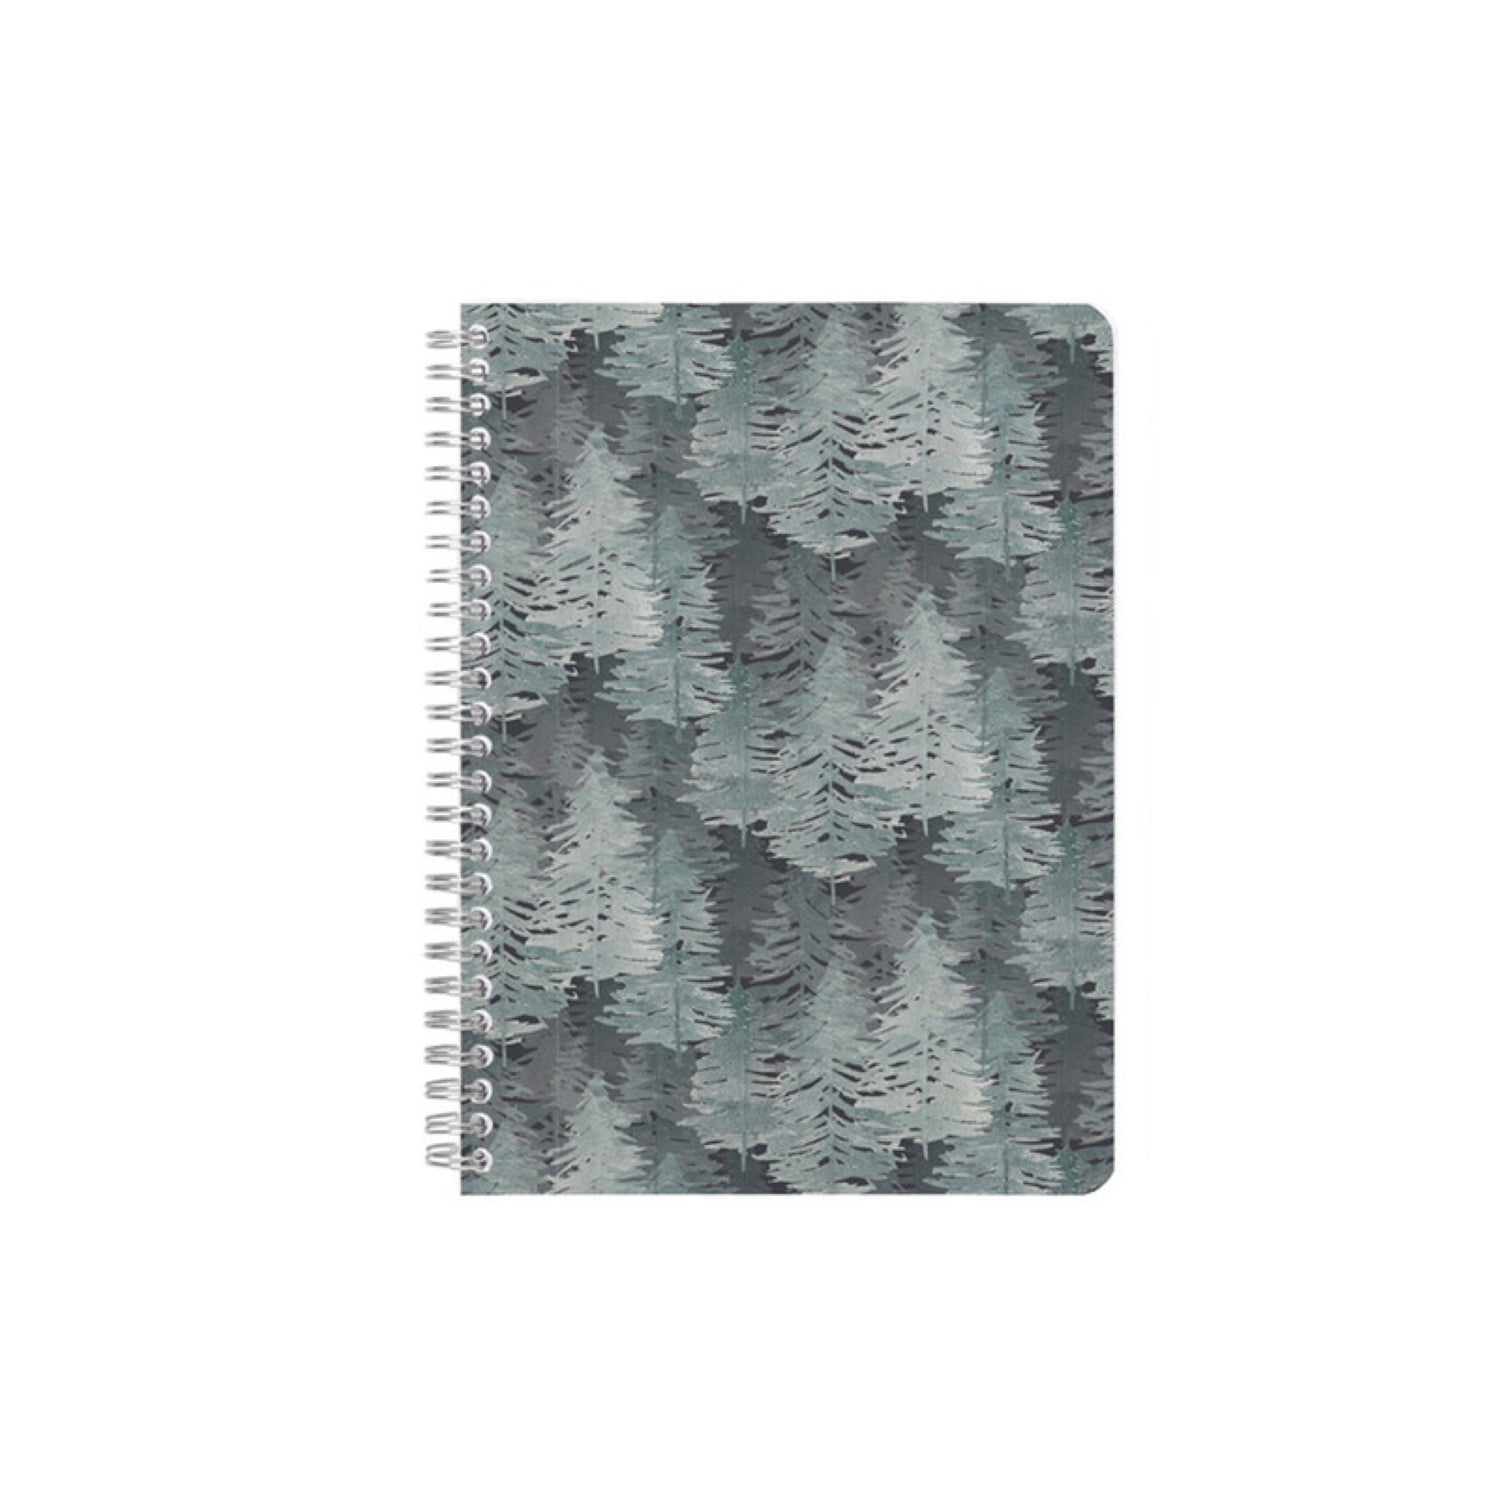 Clairefontaine La Vie en Vosges Collection Notebook Spiral Bound A5 Ruled - Forest